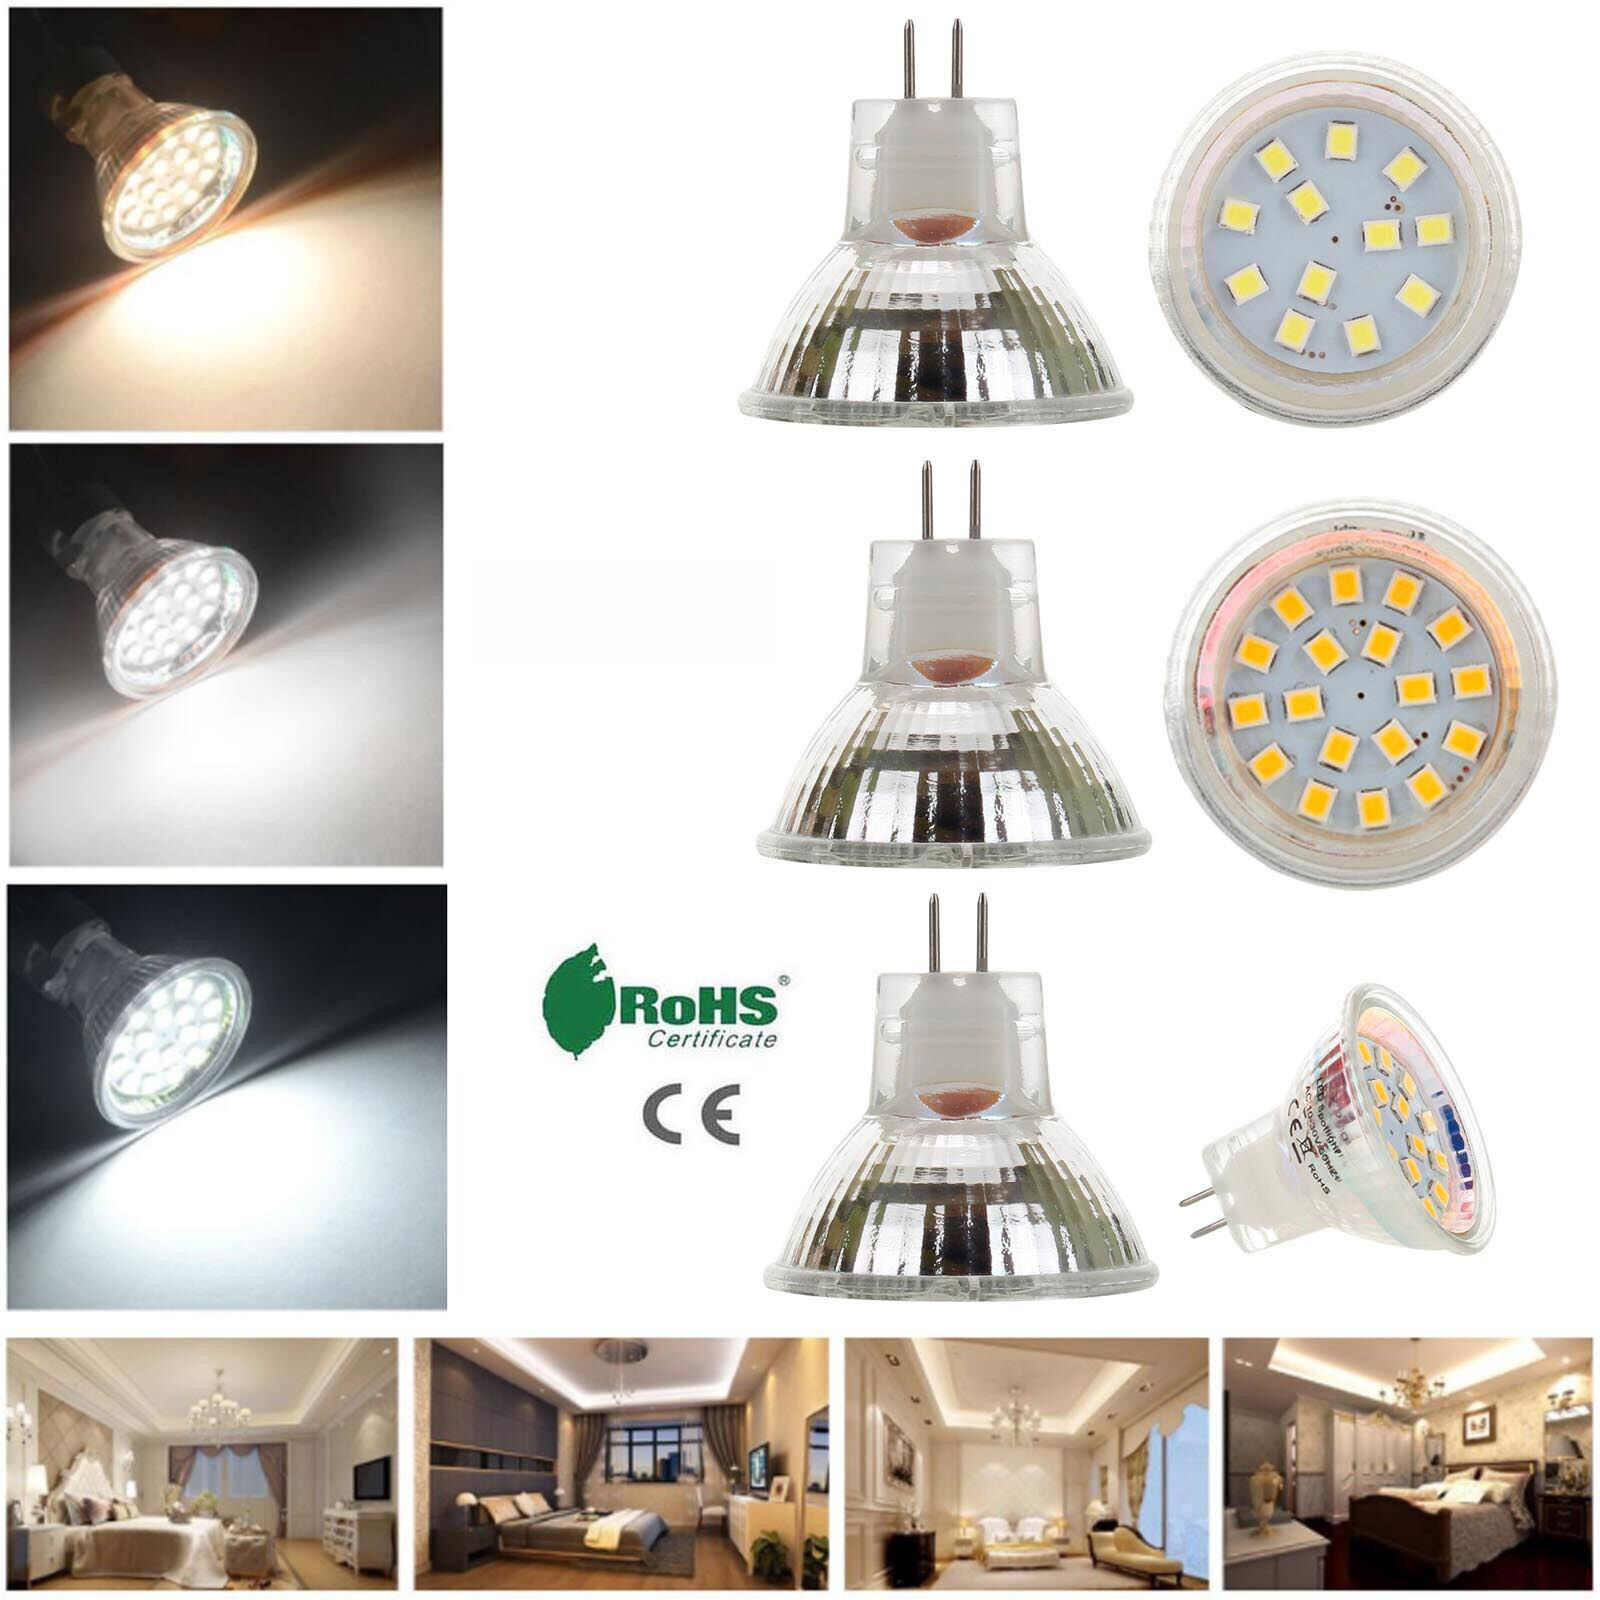 35mm LED Bulb MR11 GU4 2W 3W 120LM 150LM LED Bulb  2835 SMD Warm Cold Neutral White AC/DC12V-24V Lamp Replace Halogen Lighting